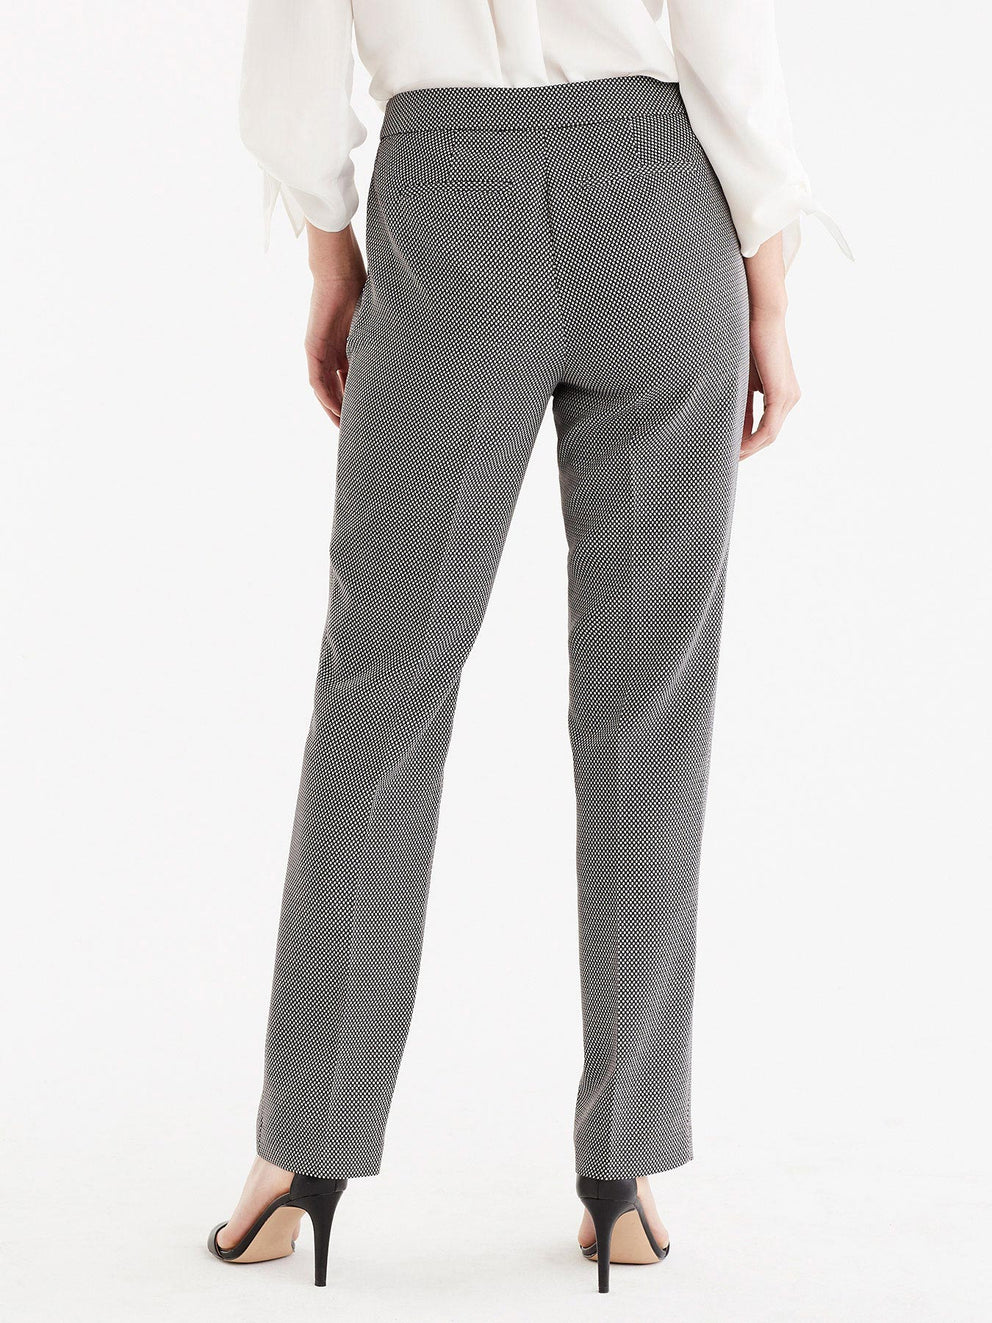 The Jones New York Printed Sydney Pant in color Black Ivory - Image Position 5